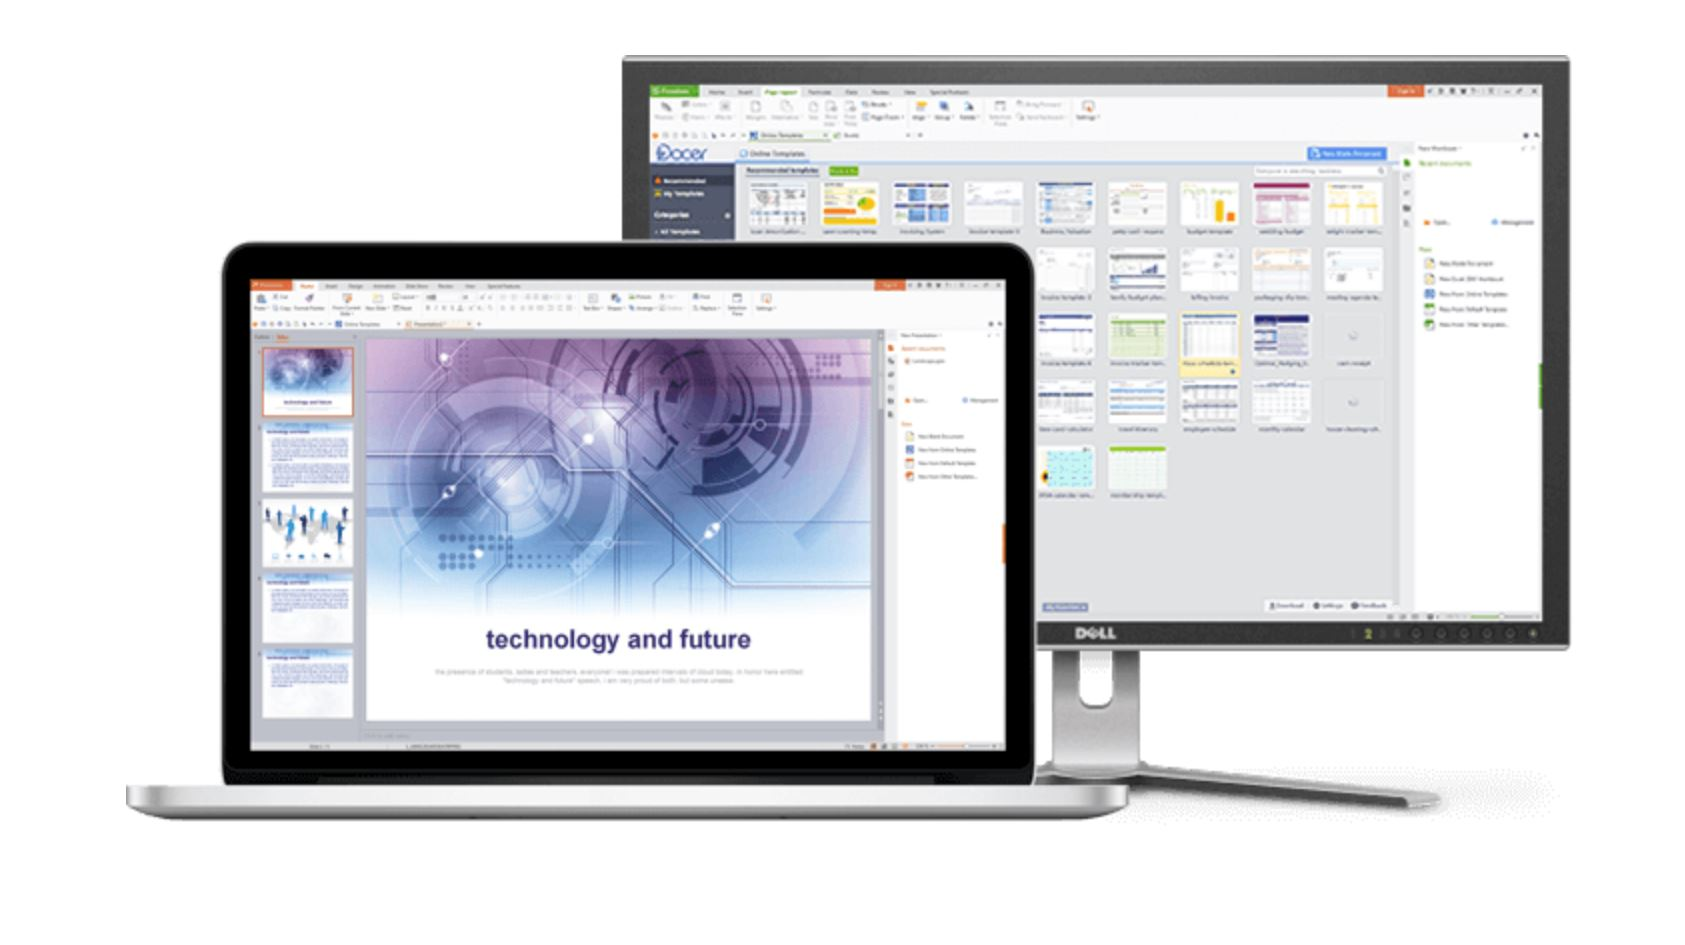 WPS Office Free Is A Complete Microsoft 365 Alternative For Users With Only  Basic Needs. As Its Name Suggests, It Doesnu0027t Cost Anything To Use The  Suite.